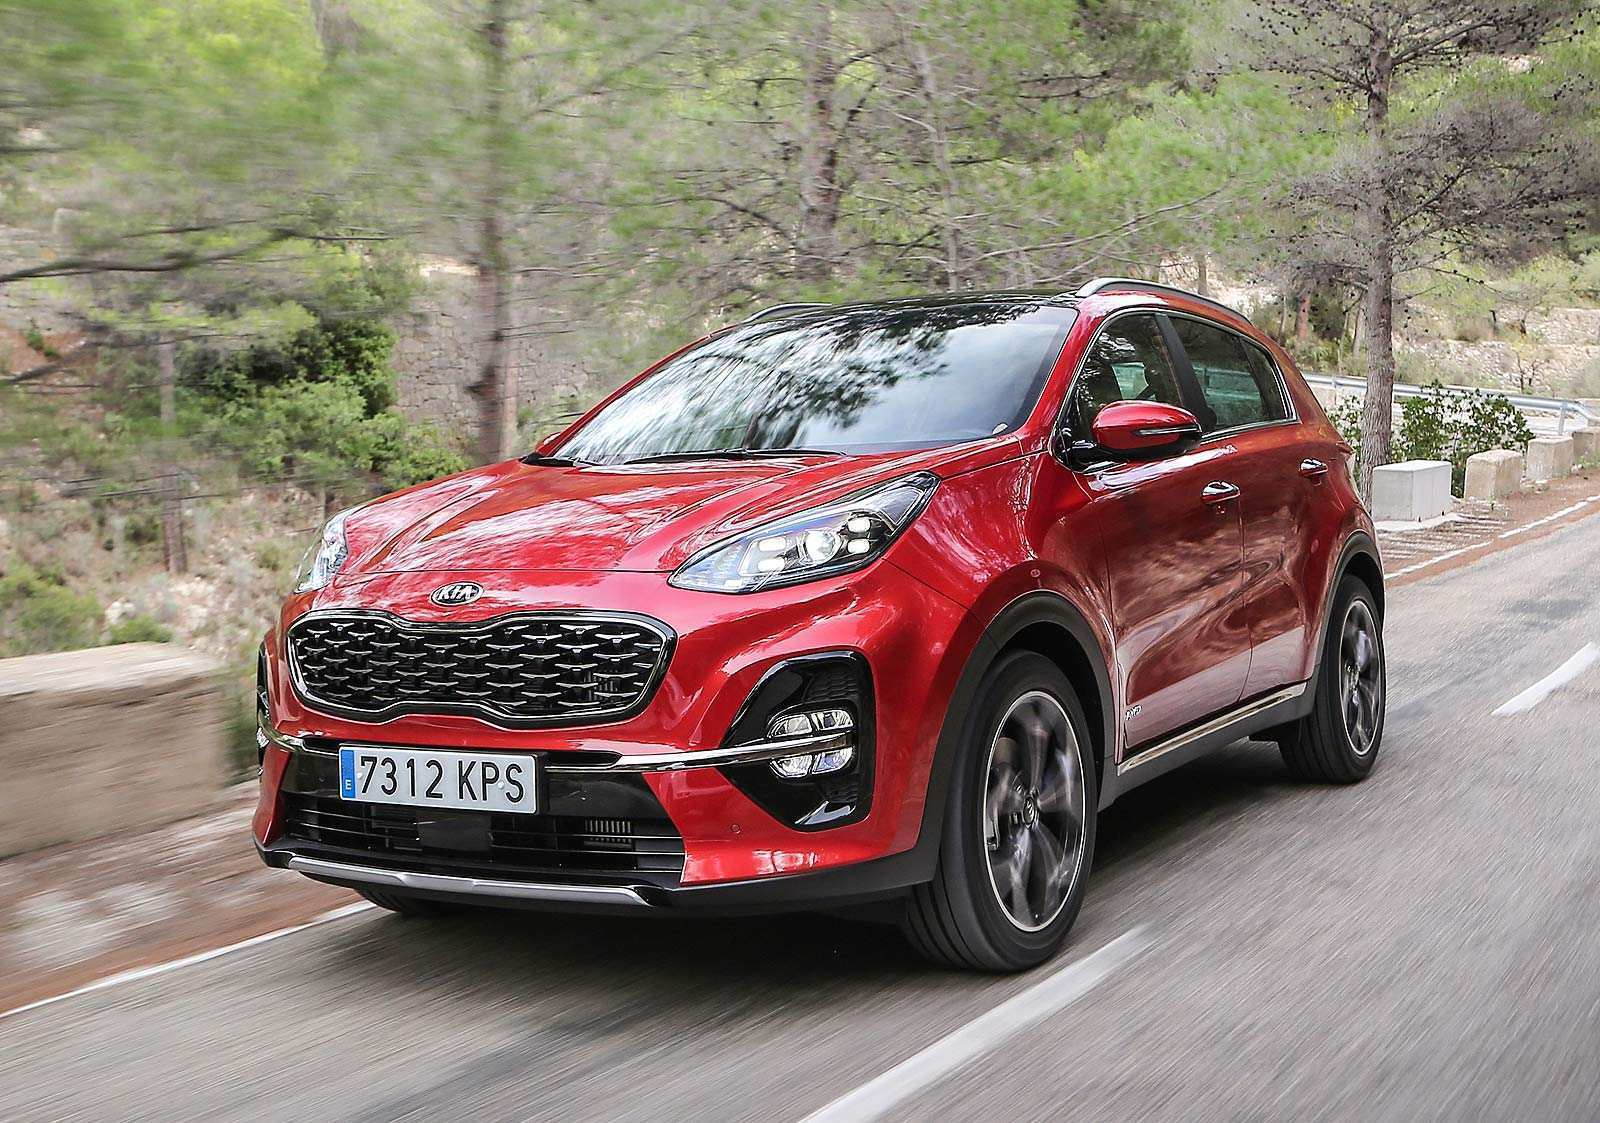 62 All New Kia Sportage Gt Line 2020 Images with Kia Sportage Gt Line 2020